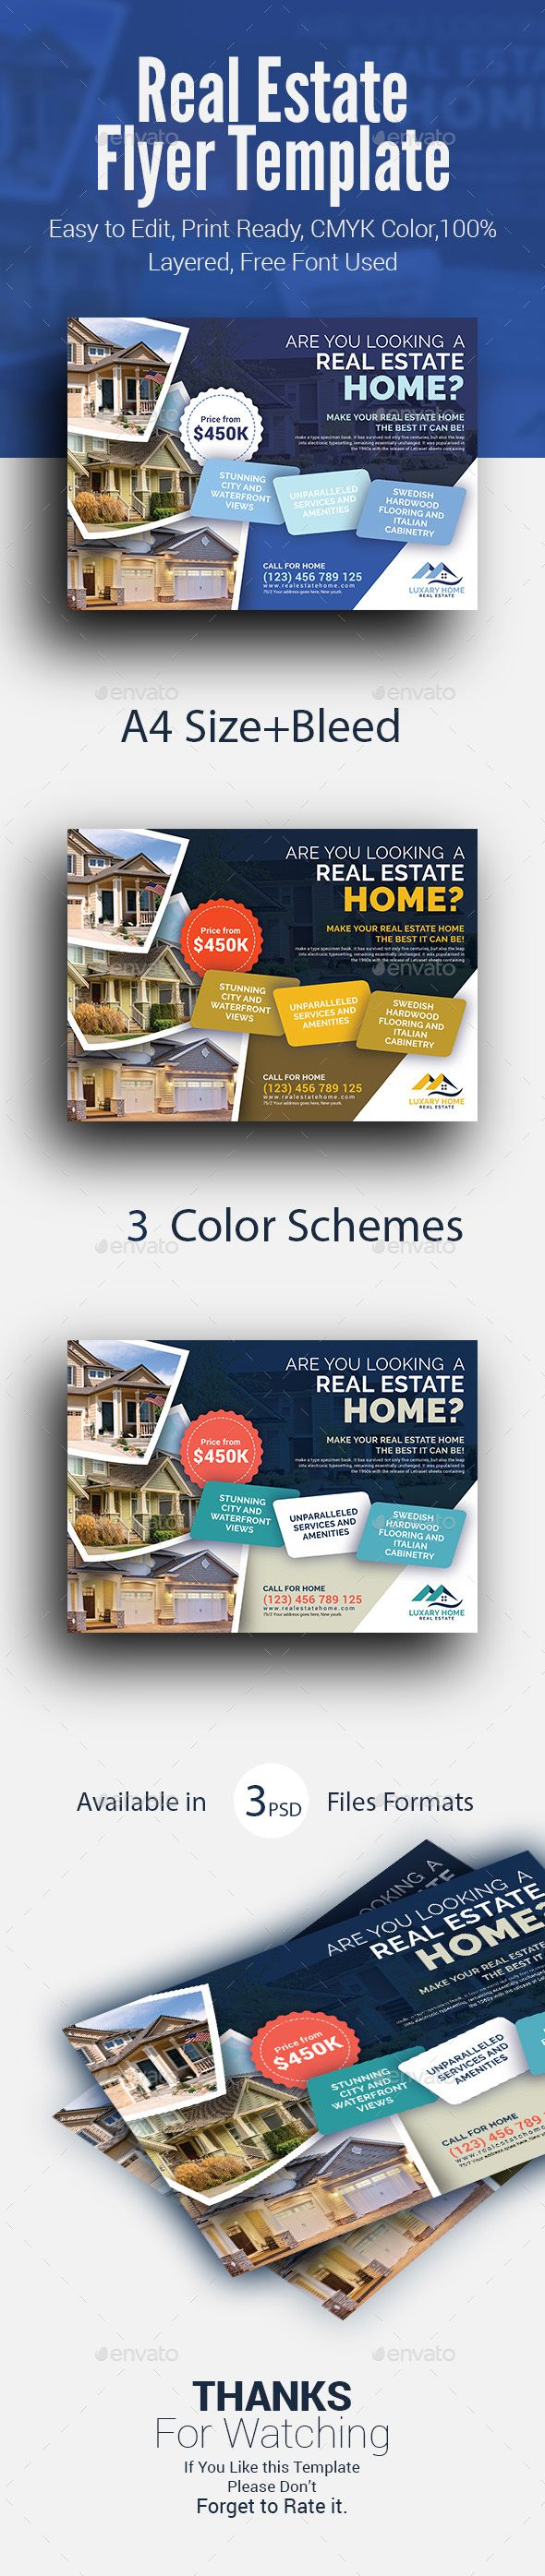 Real Estate Flyer Template Fully Editable Promotional Flyer Template A4 Advert Advertisement In 2020 Real Estate Flyer Template Real Estate Flyers Flyer Template